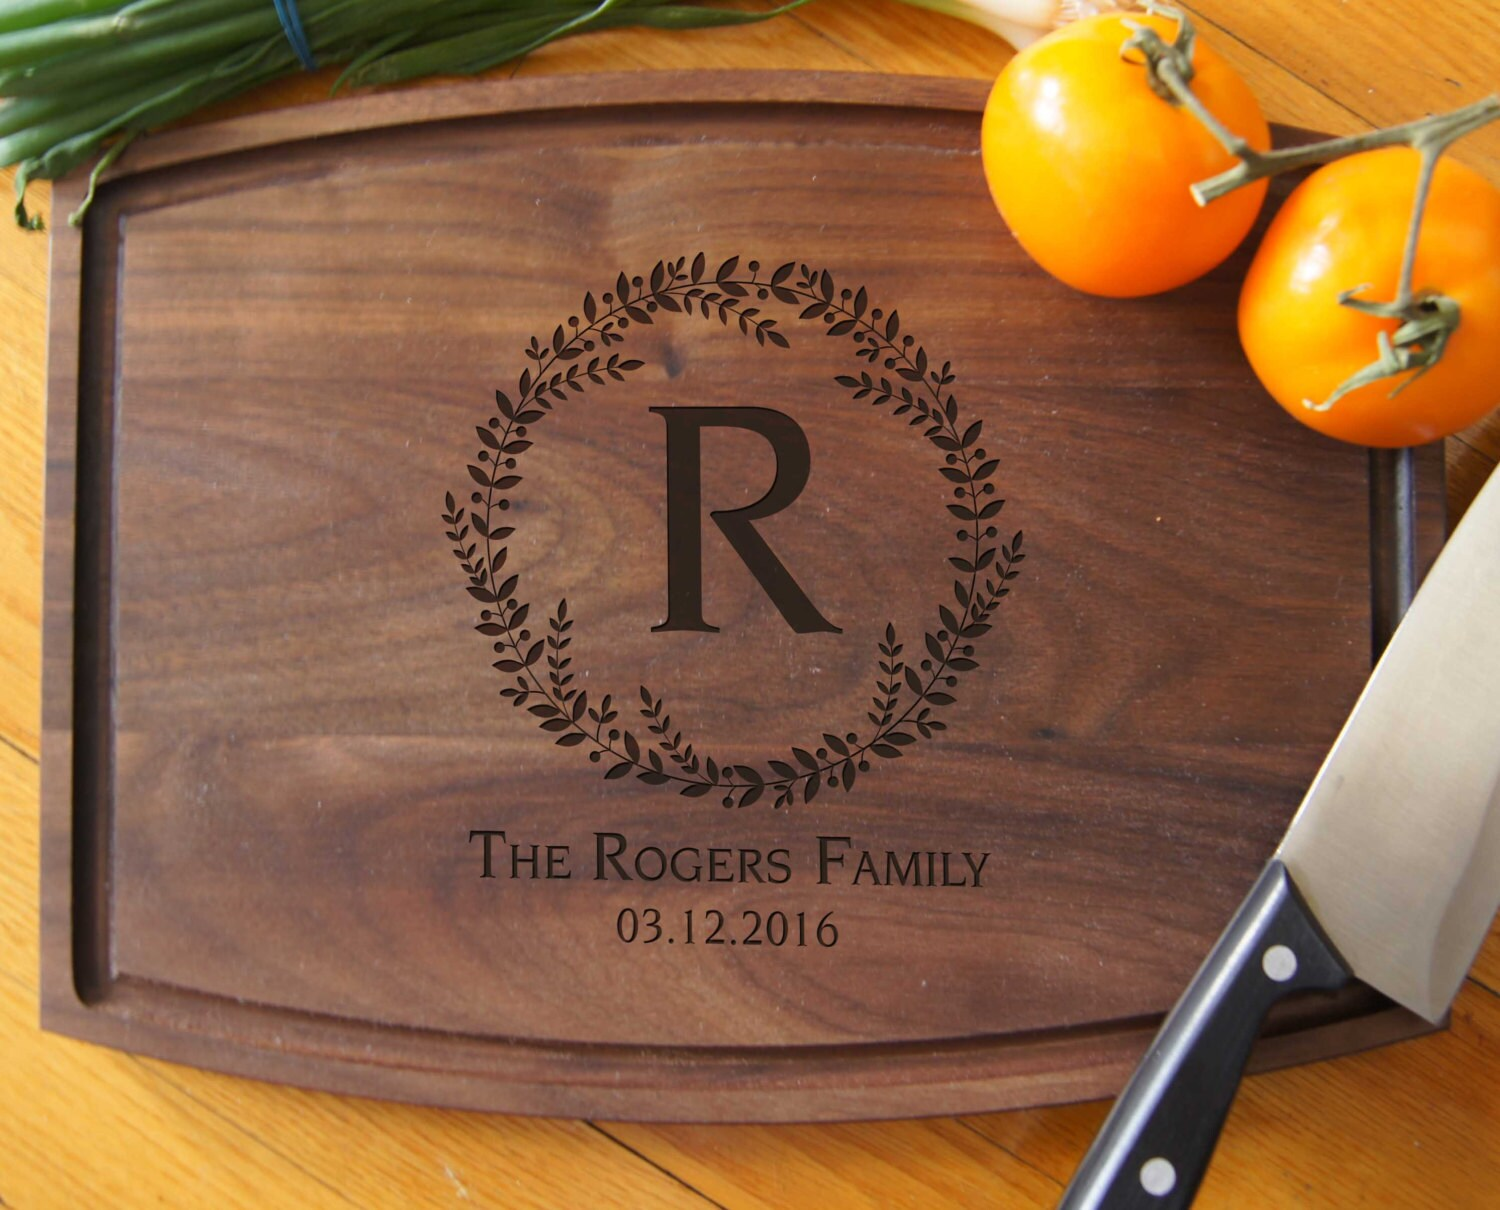 Personalized Cutting Boards Engraved cutting board image 1